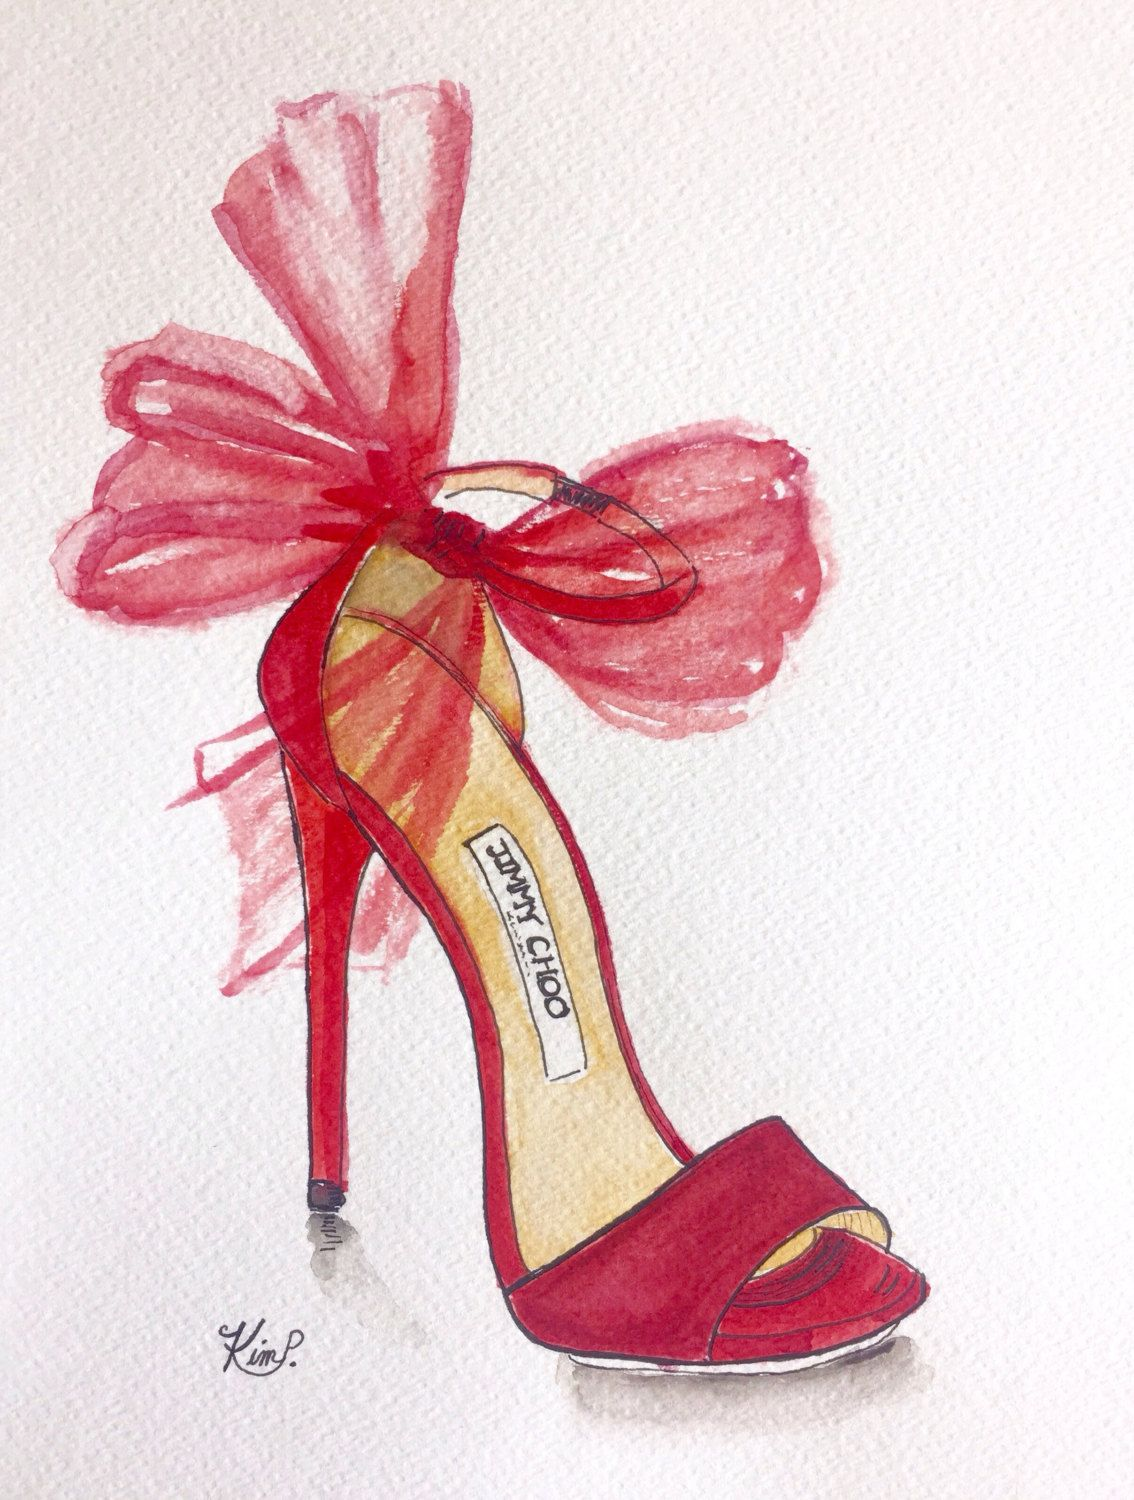 a79fa85b8802 Fashion shoe illustration  Jimmy Choo inspired red heel